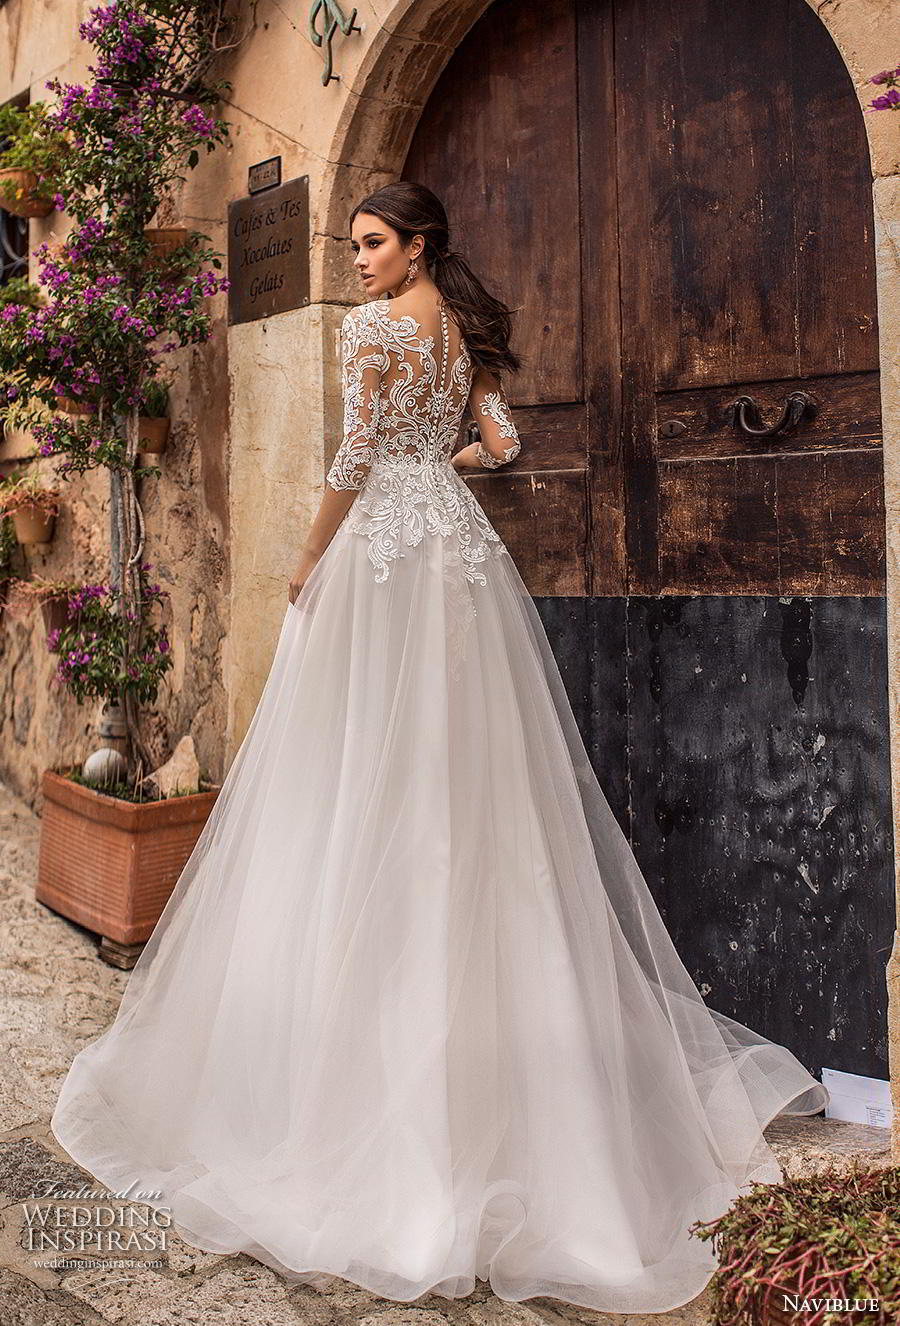 naviblue 2019 bridal half sleeves scoop neckline heavily embellished bodice romantic a  line wedding dress lace back sweep train (2) bv